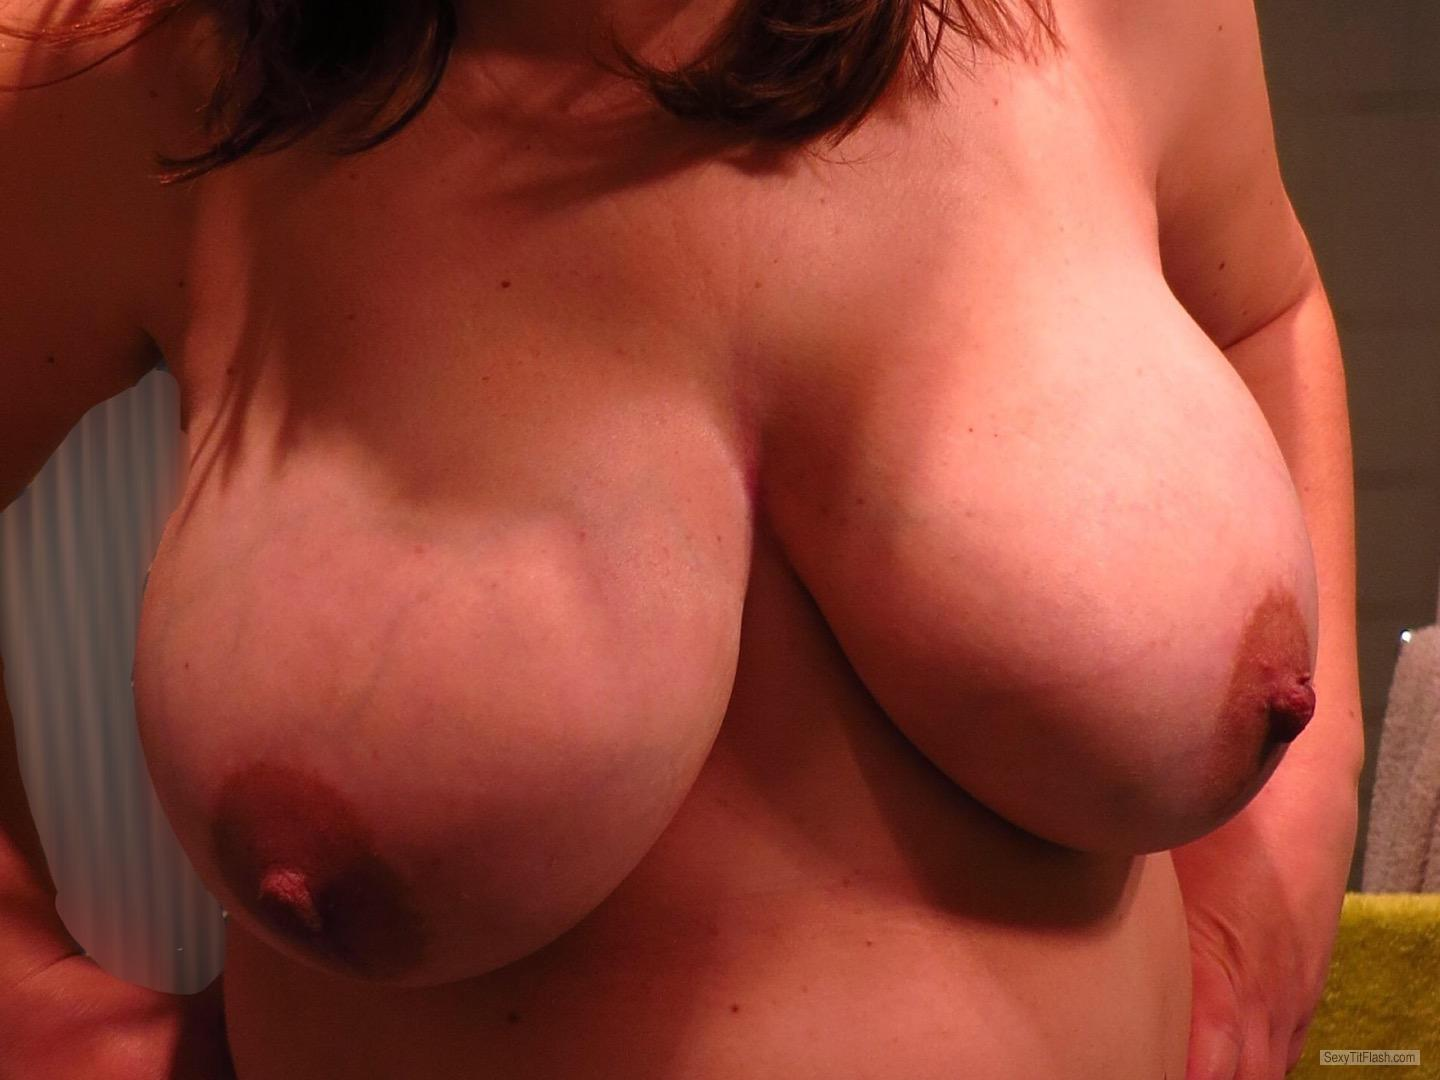 Tit Flash: My Big Tits - Sexcouples from France